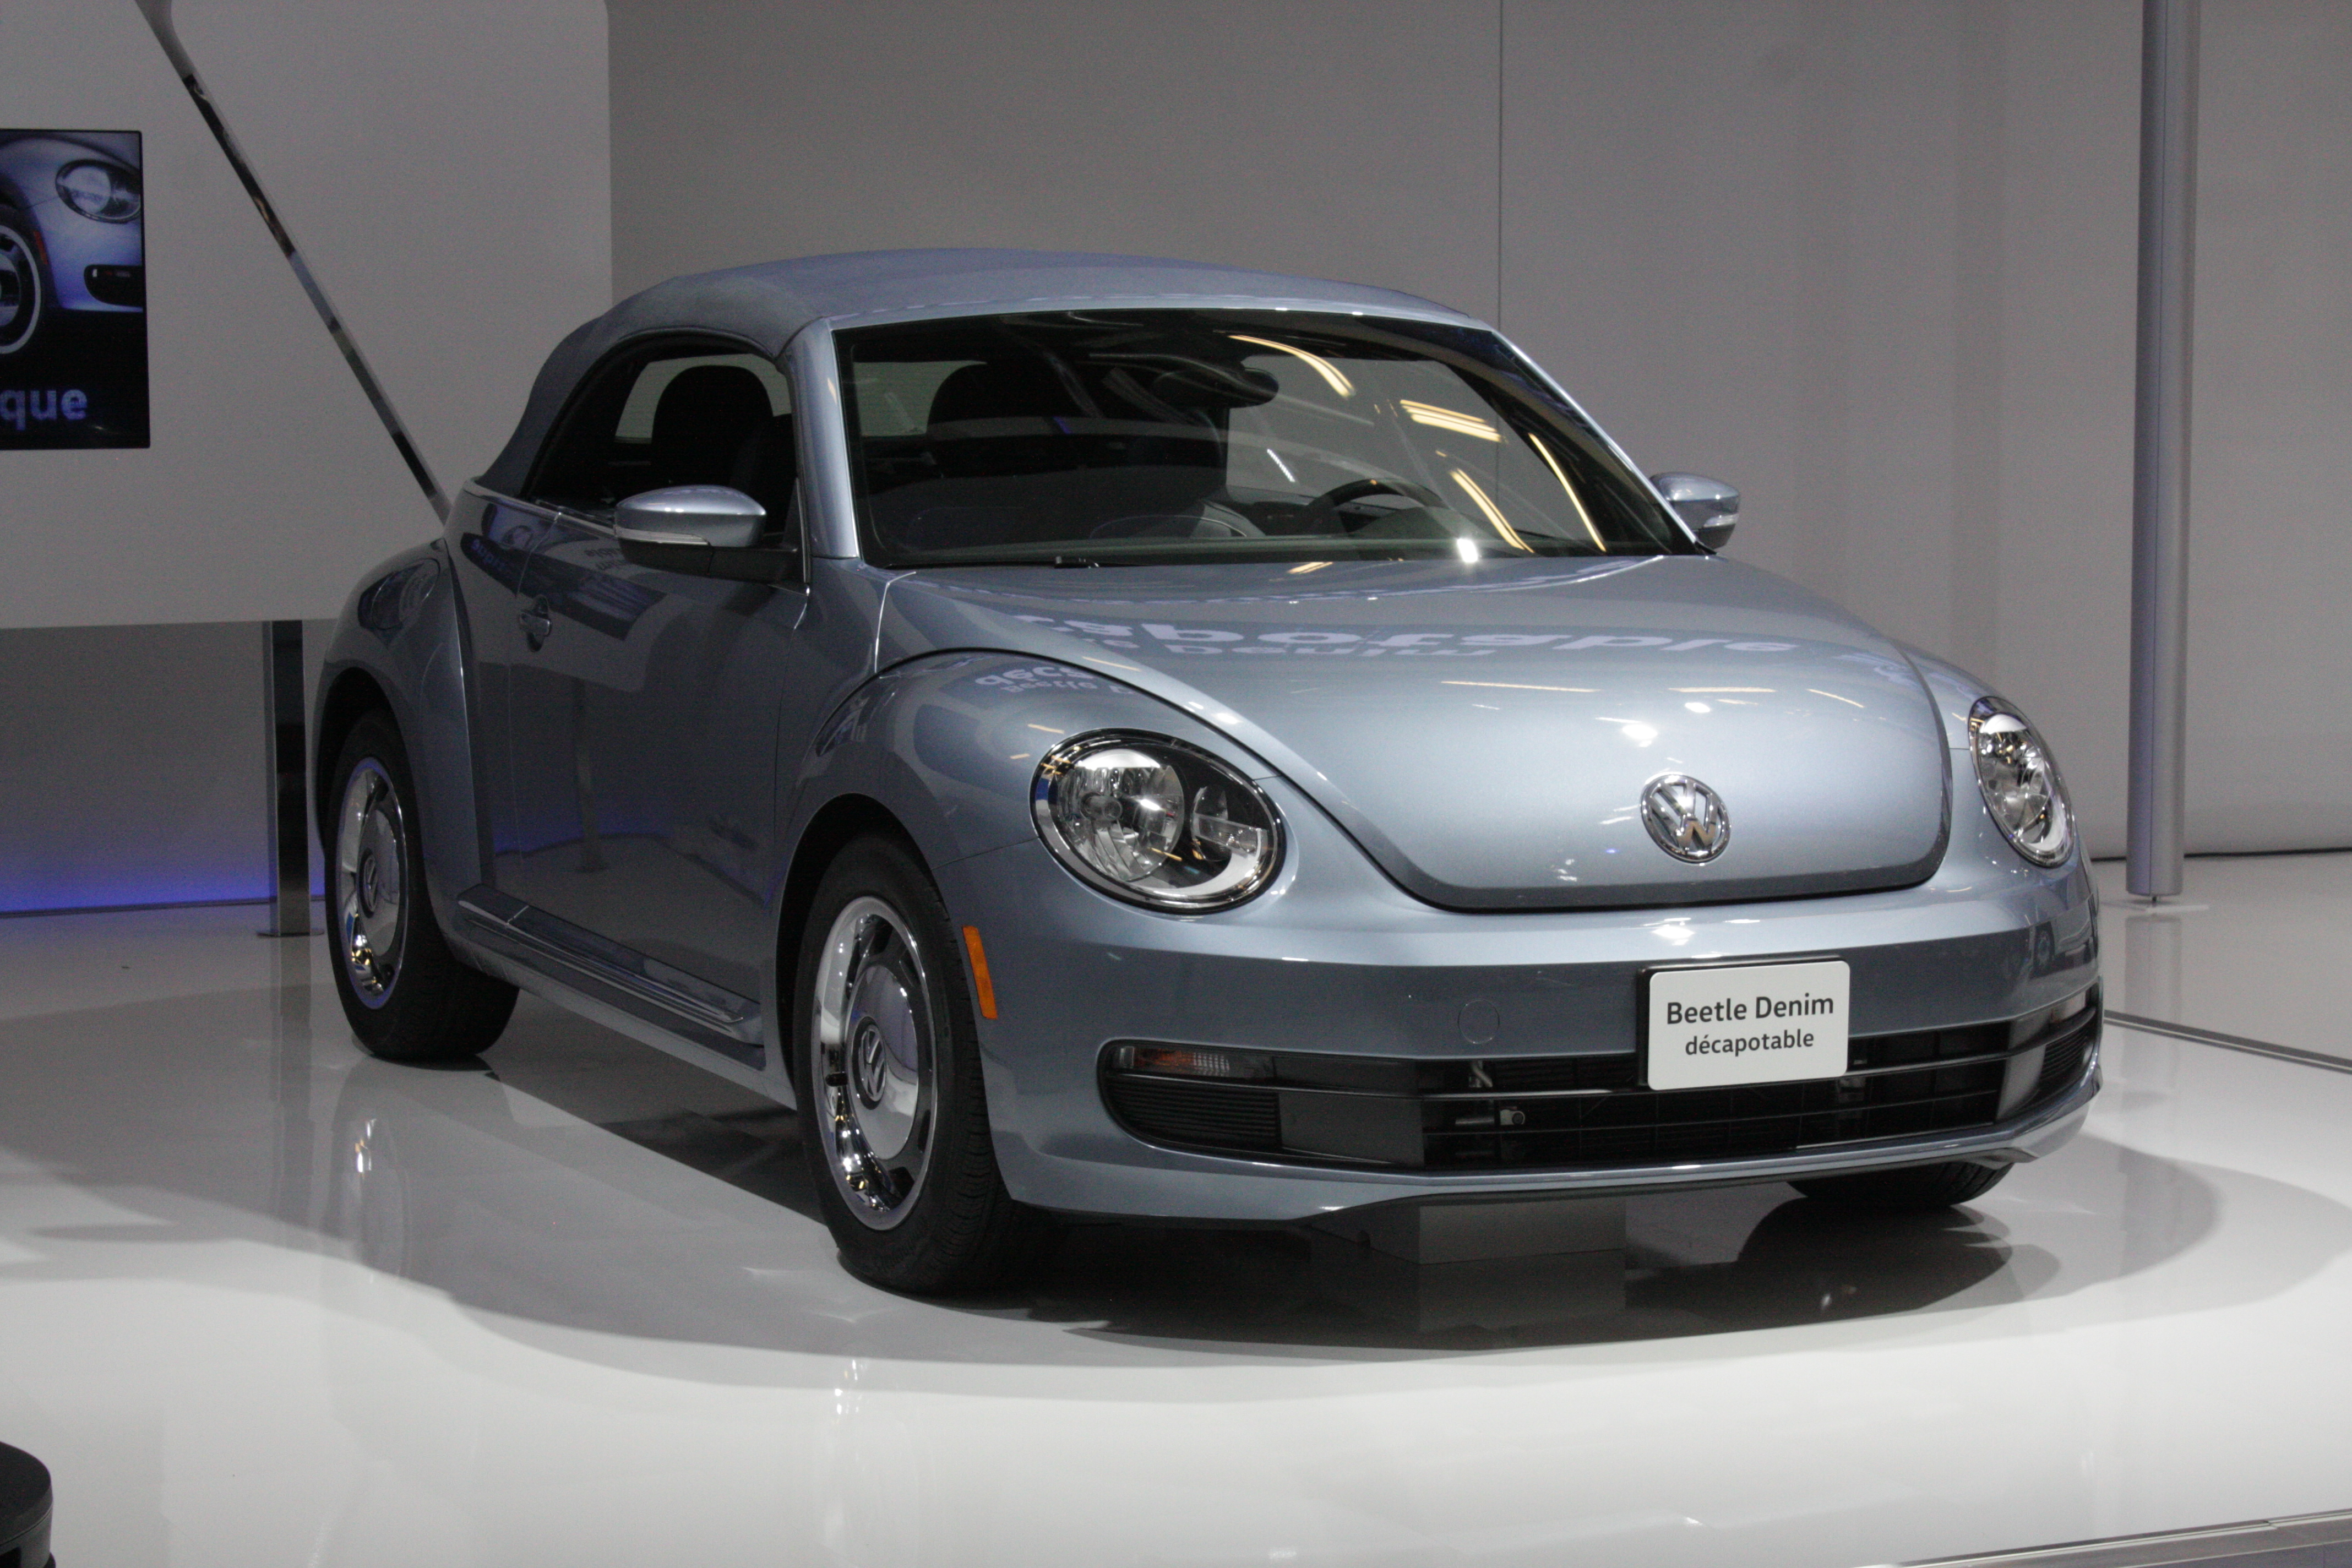 Finally, Volkswagen's two Canuck premieres are a Beetle convertible done up in a new Denim trim...